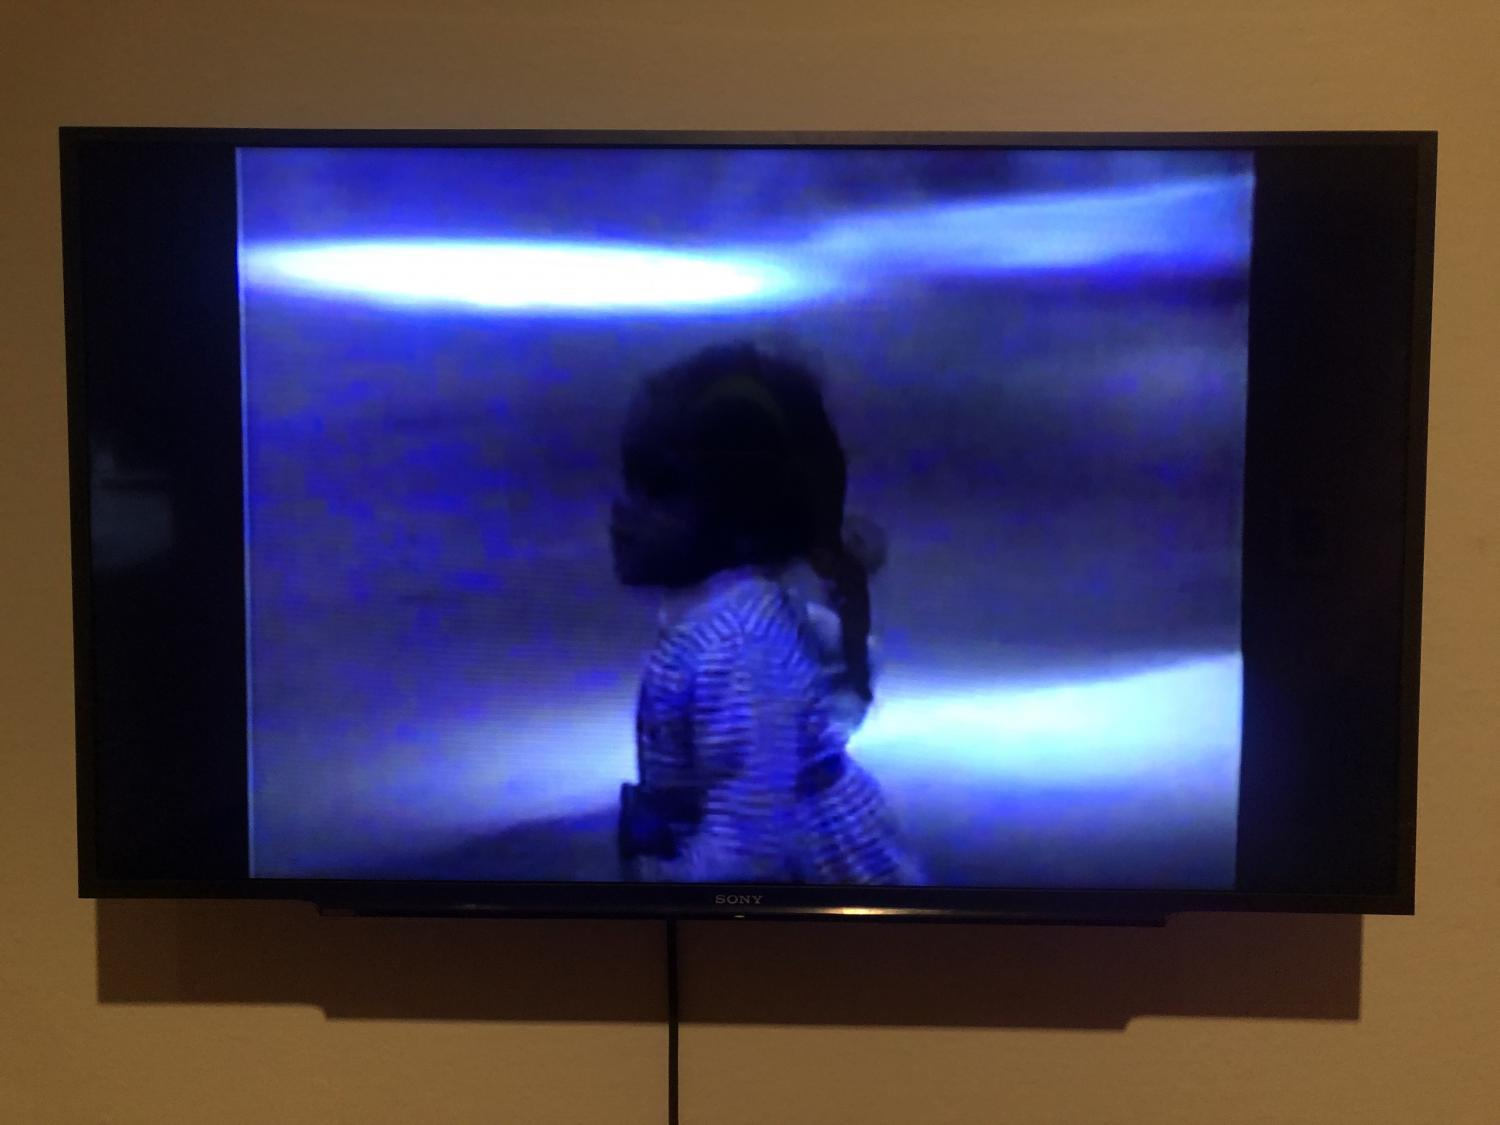 Television with a blue image of an 2-3 year old Black girl with hair braided, turned sideways in profile. She is in a pretty dress.